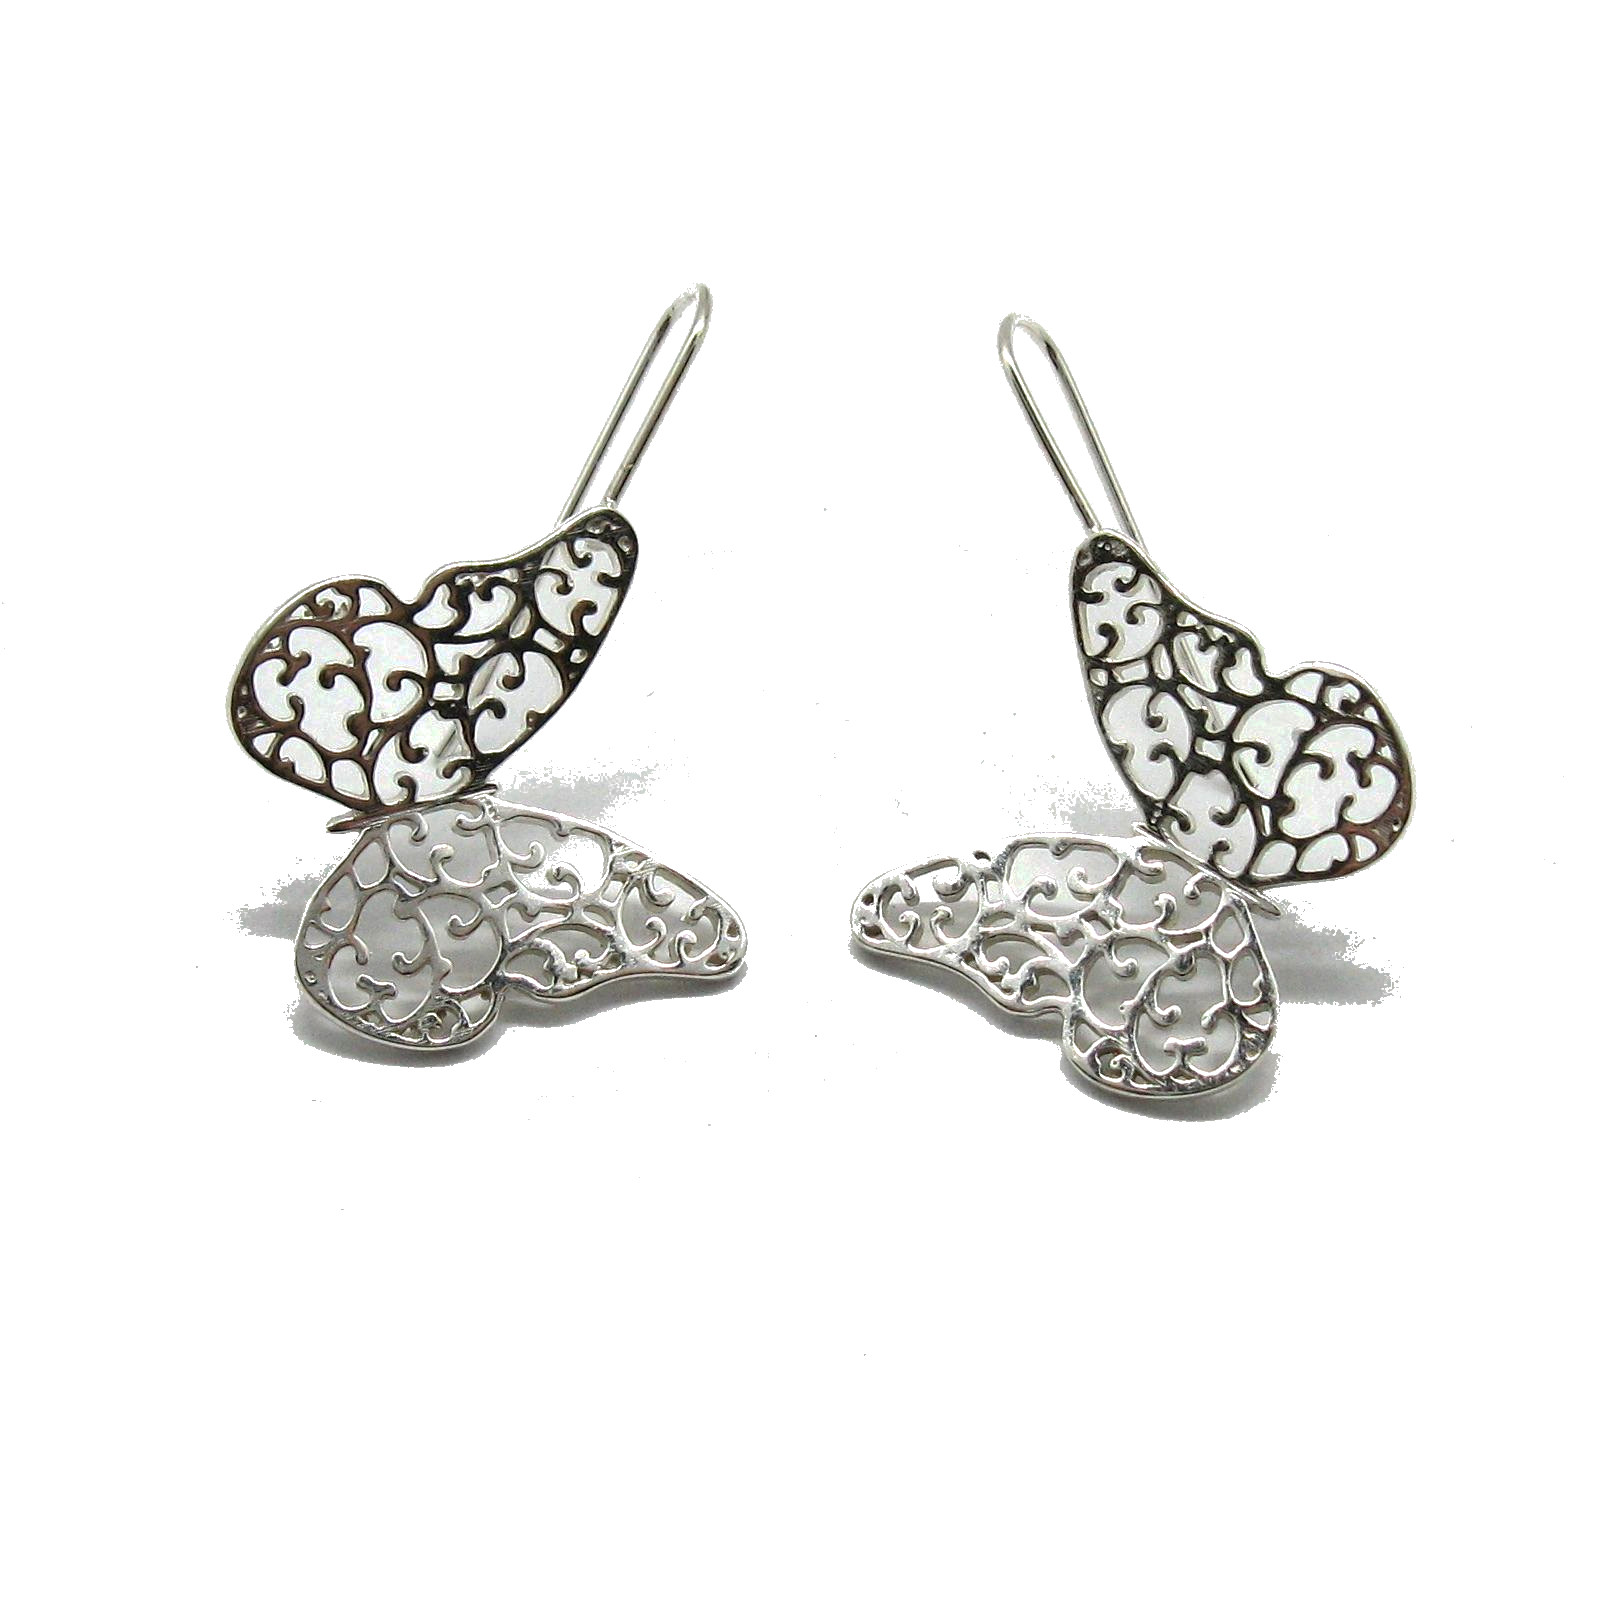 Silver earrings - E000737